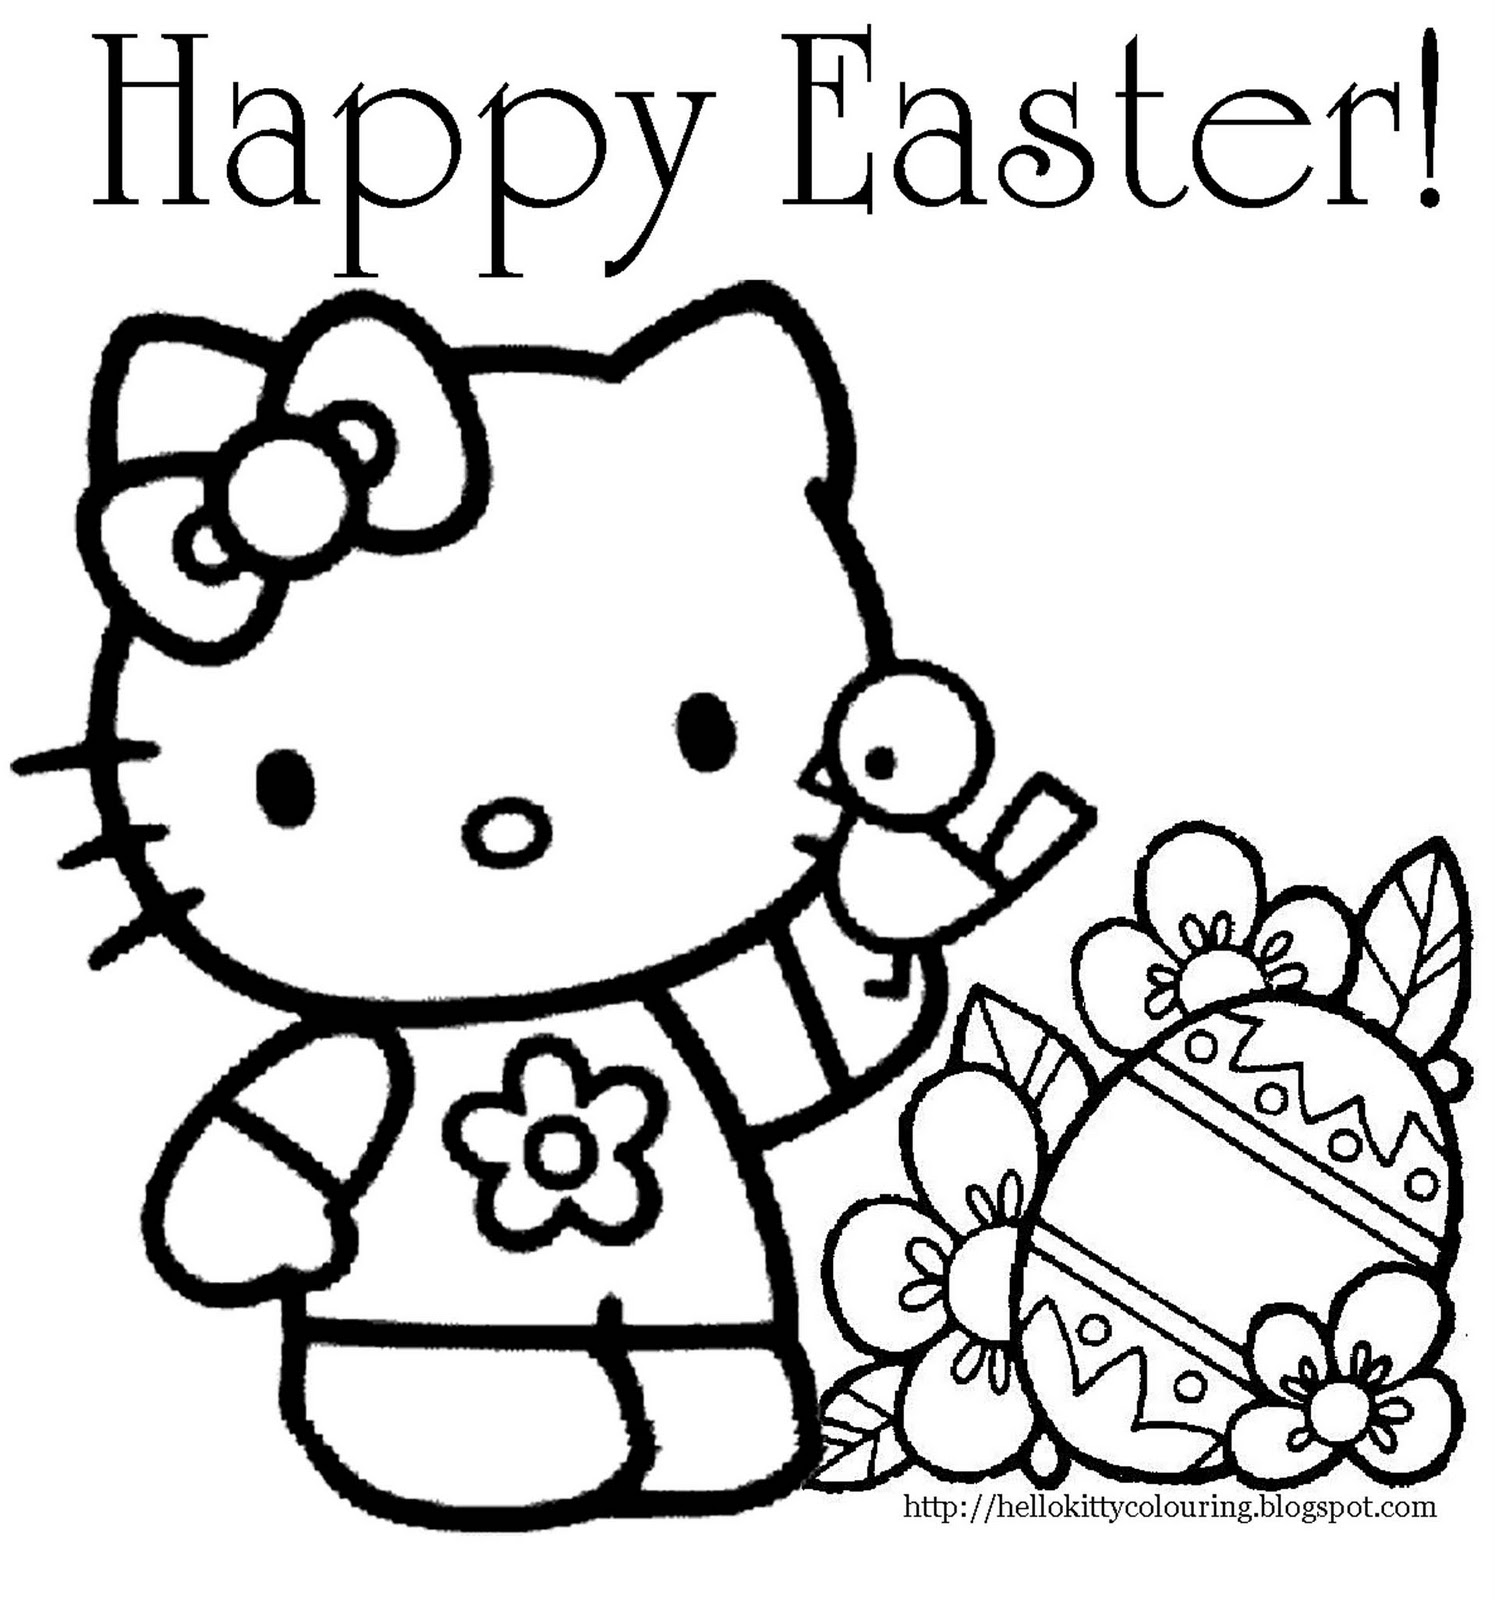 coloring pages of the easter - photo#45